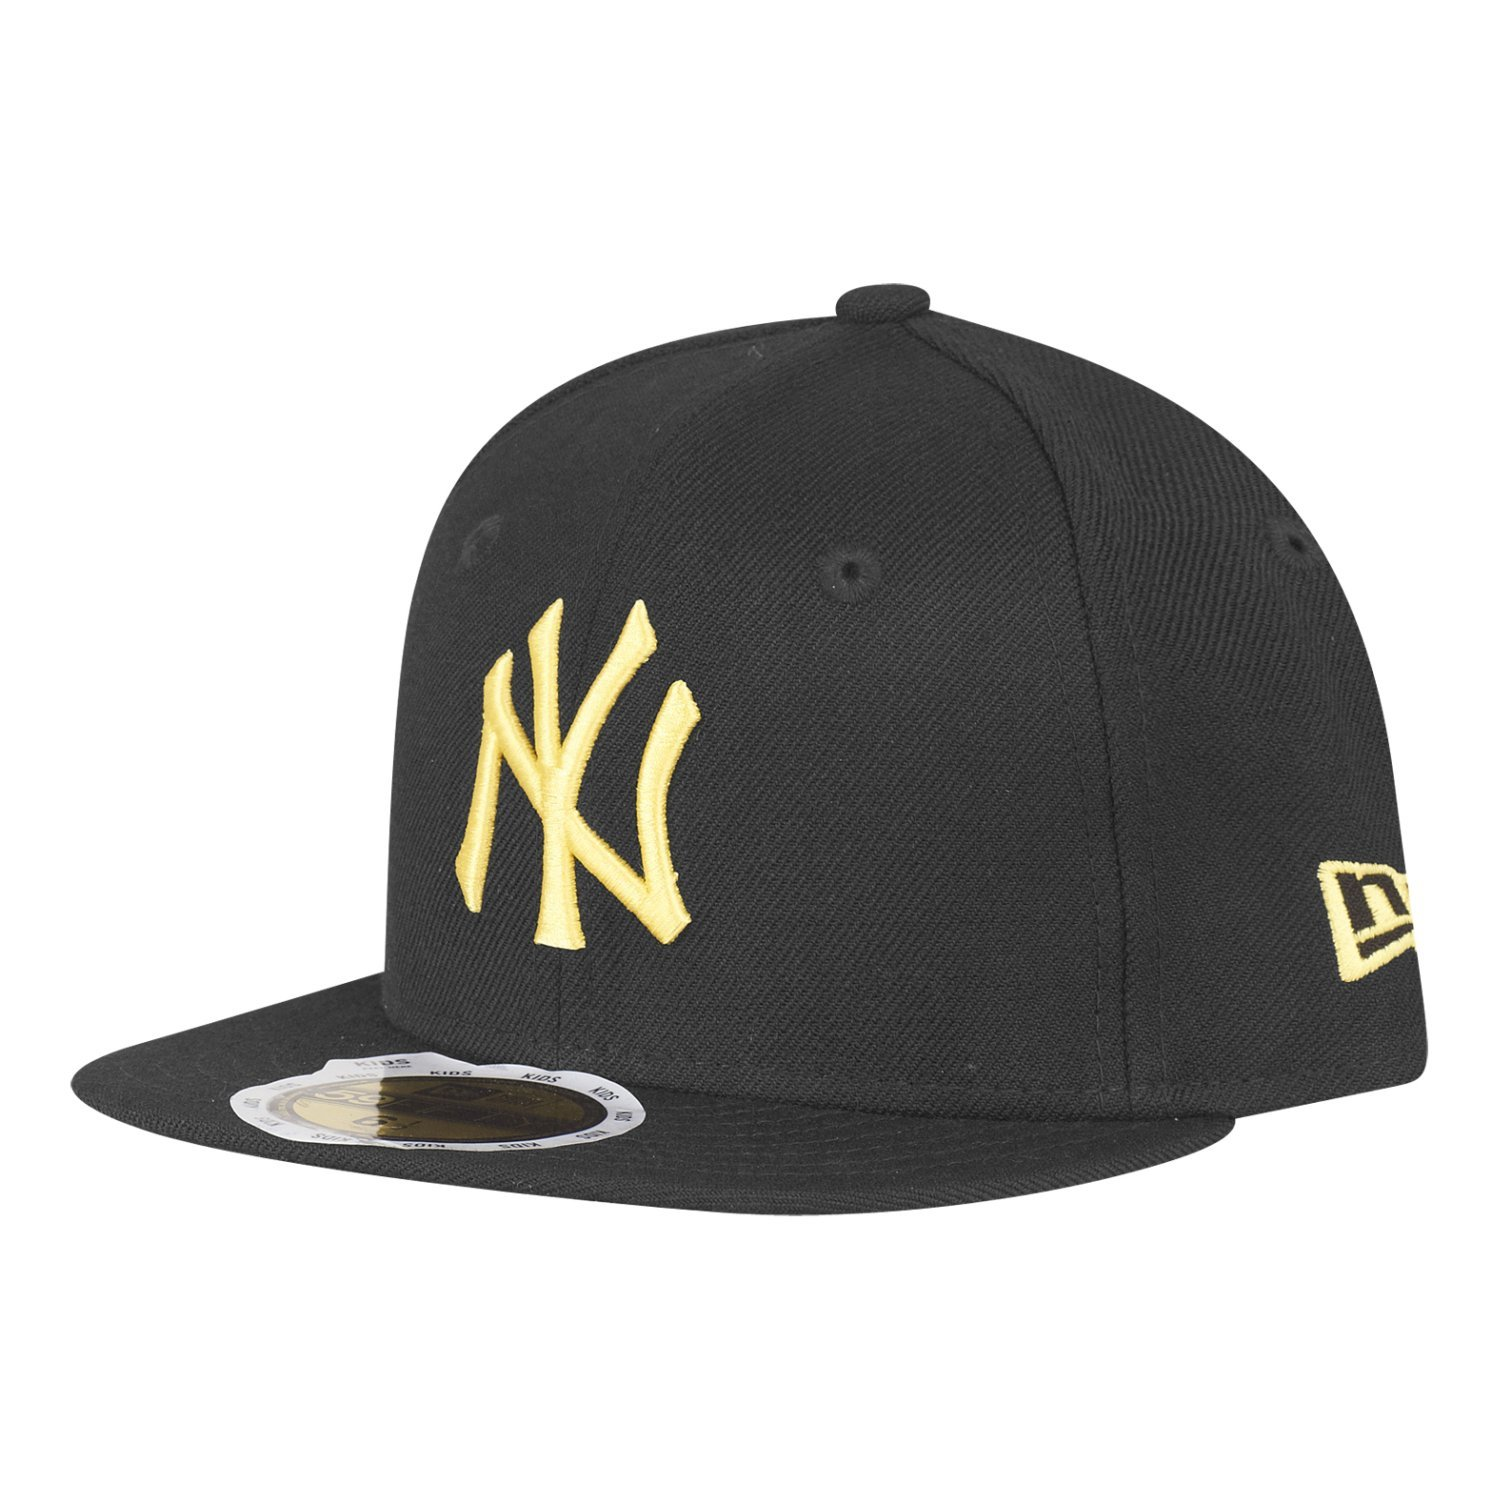 New Era Kids New York Yankees 59Fifty Cap in Black Yellow-Flat  Brim-Perforations  New Era  Amazon.co.uk  Clothing d57e60a2e23